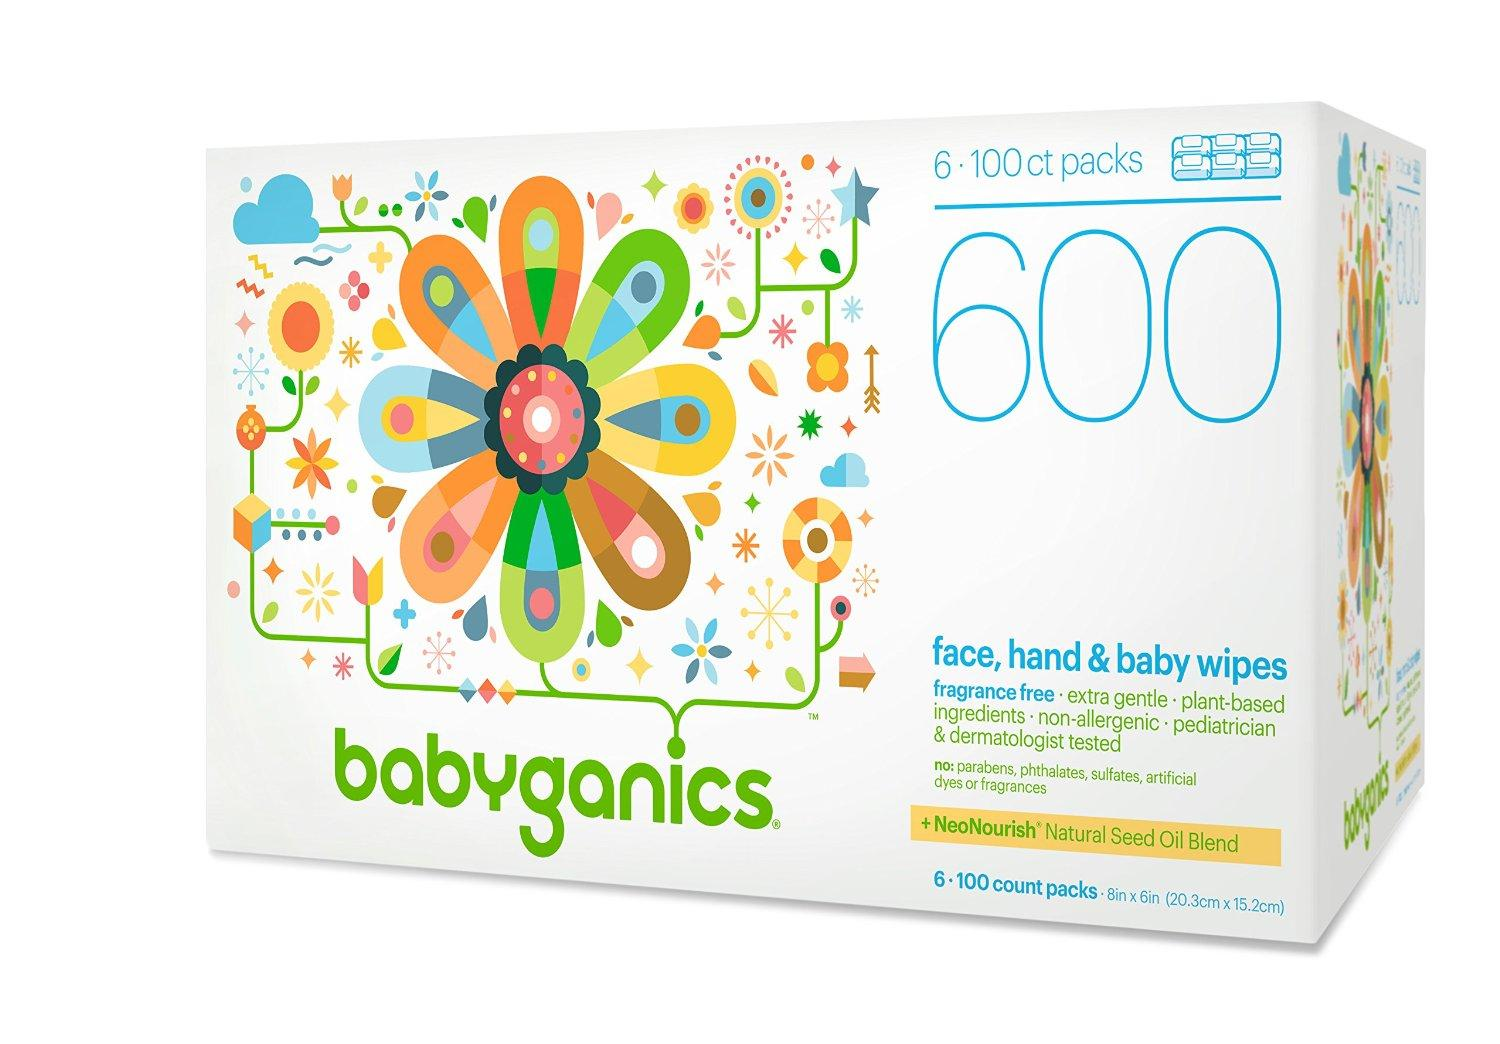 Babyganics Face, Hand & Baby Wipes, Fragrance Free, 600 Count, Prime members only